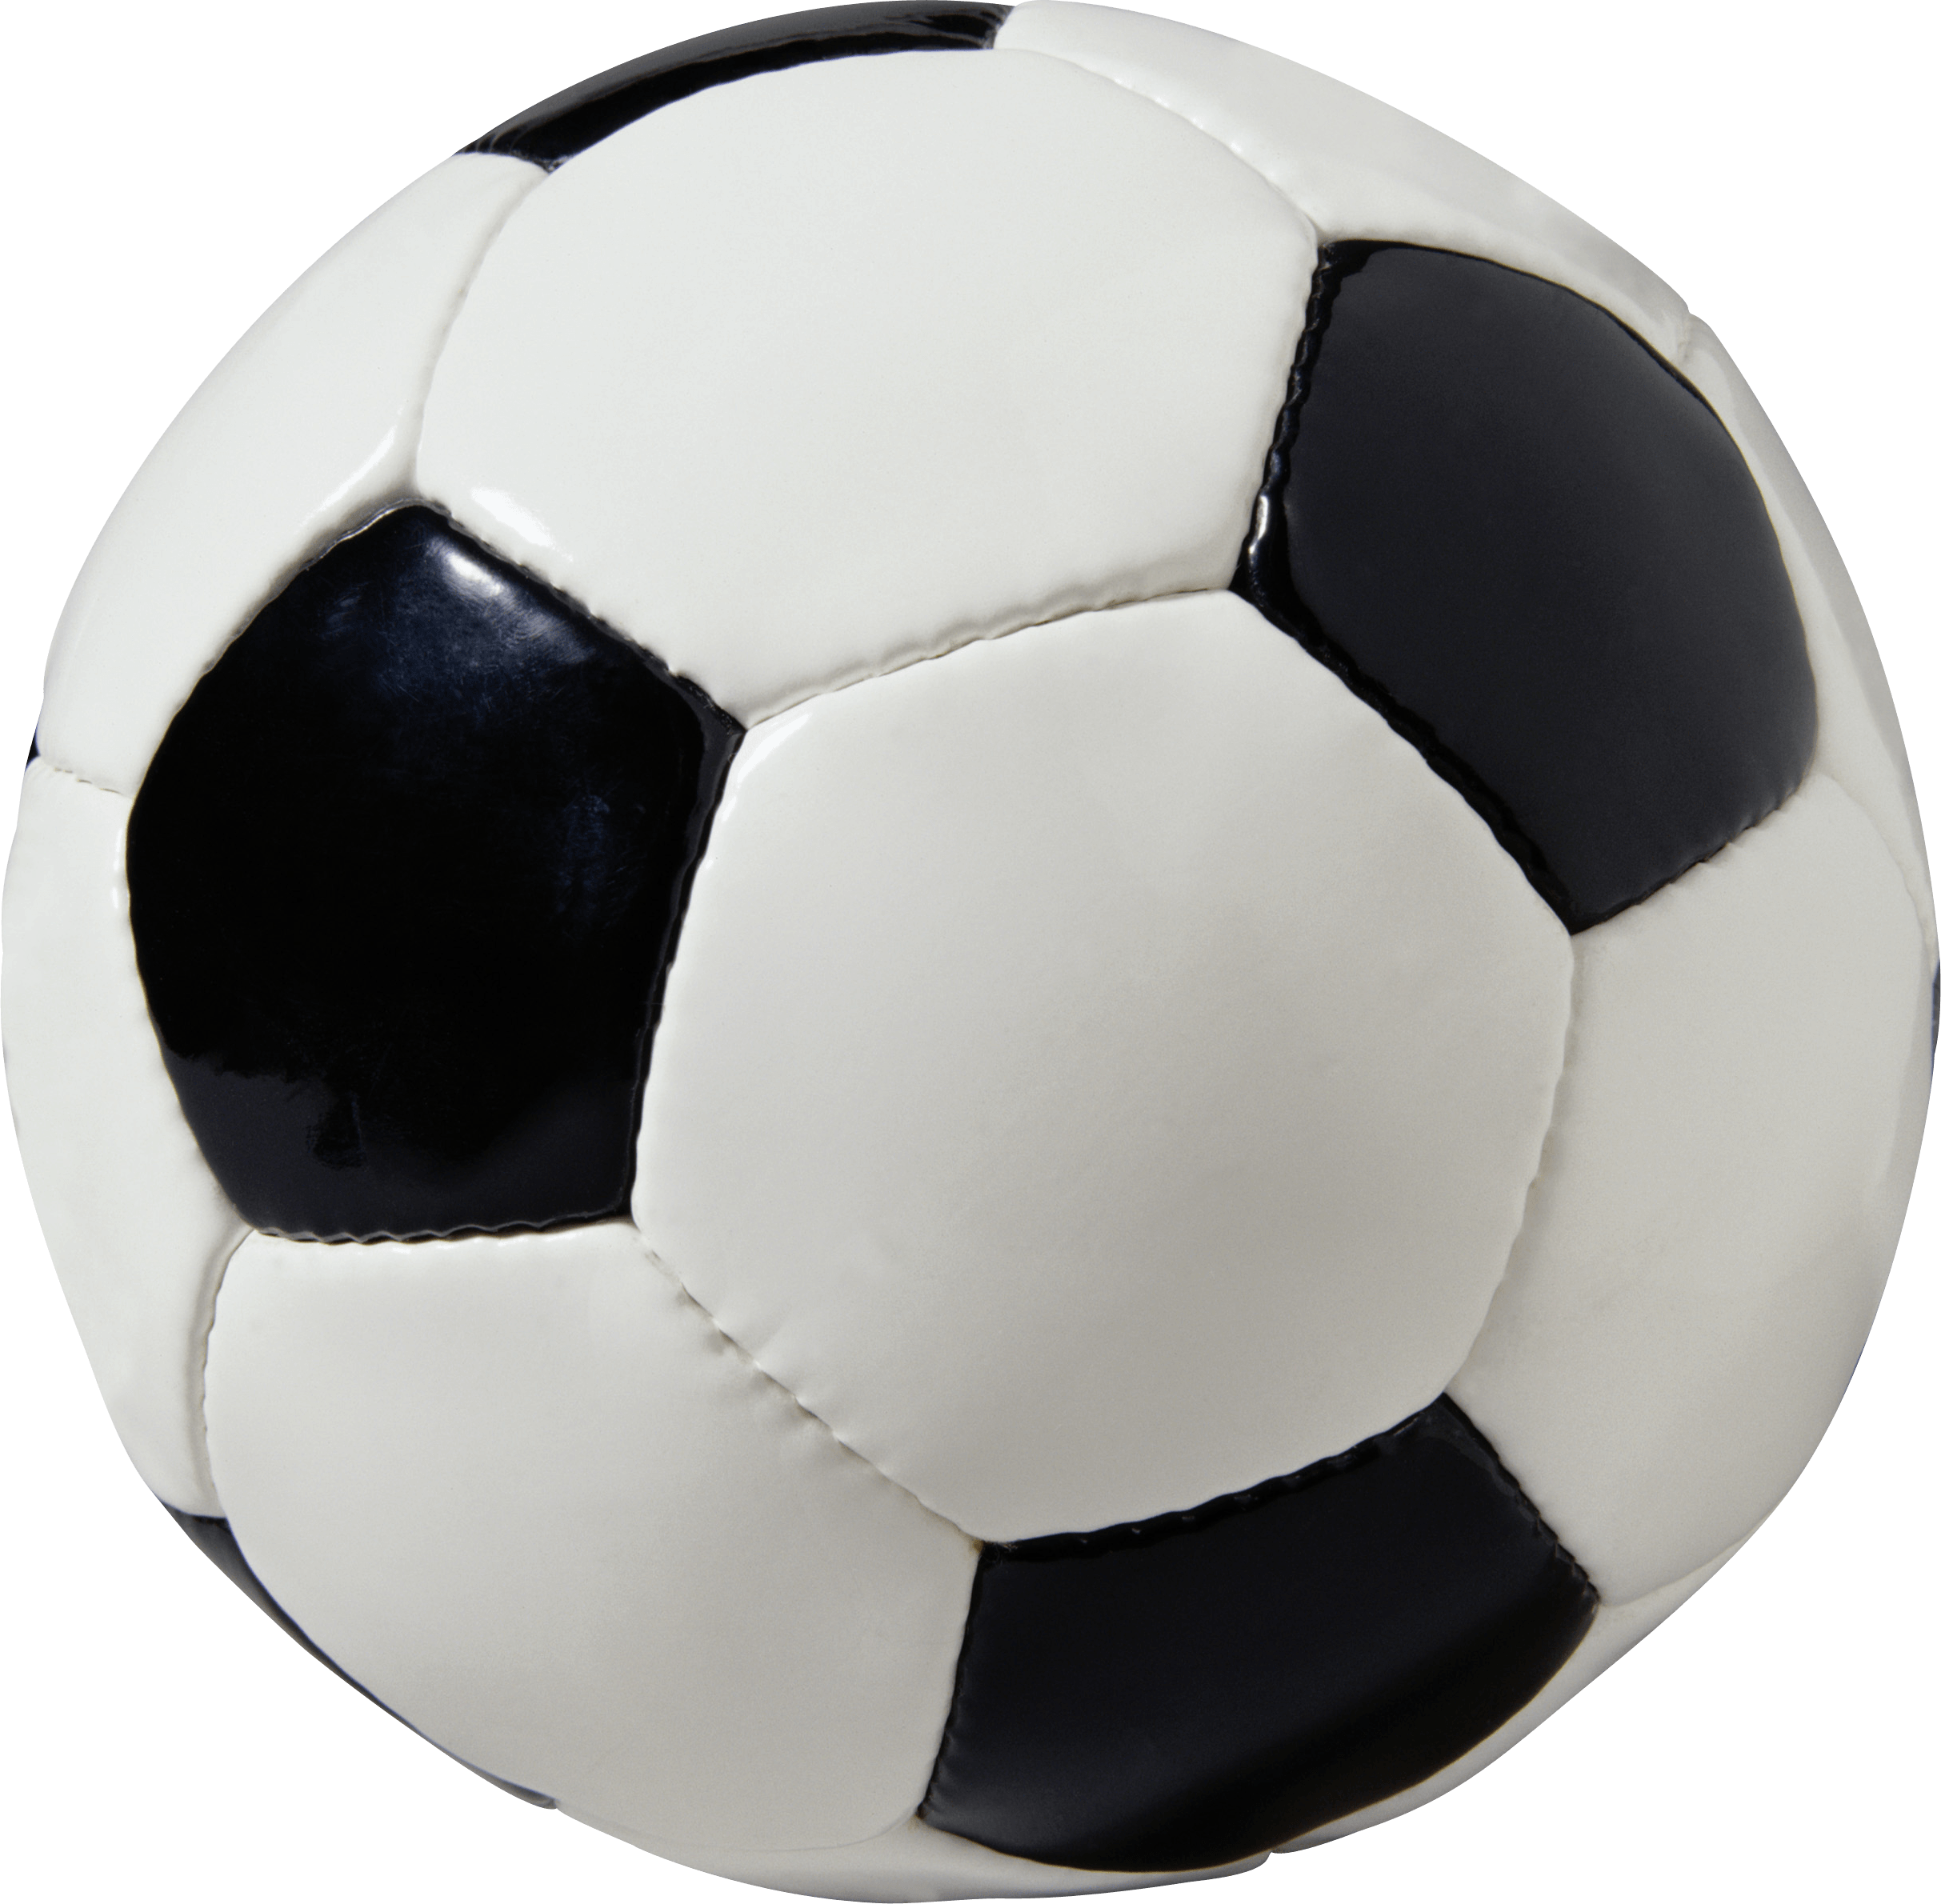 Leather Football Ball transparent PNG.